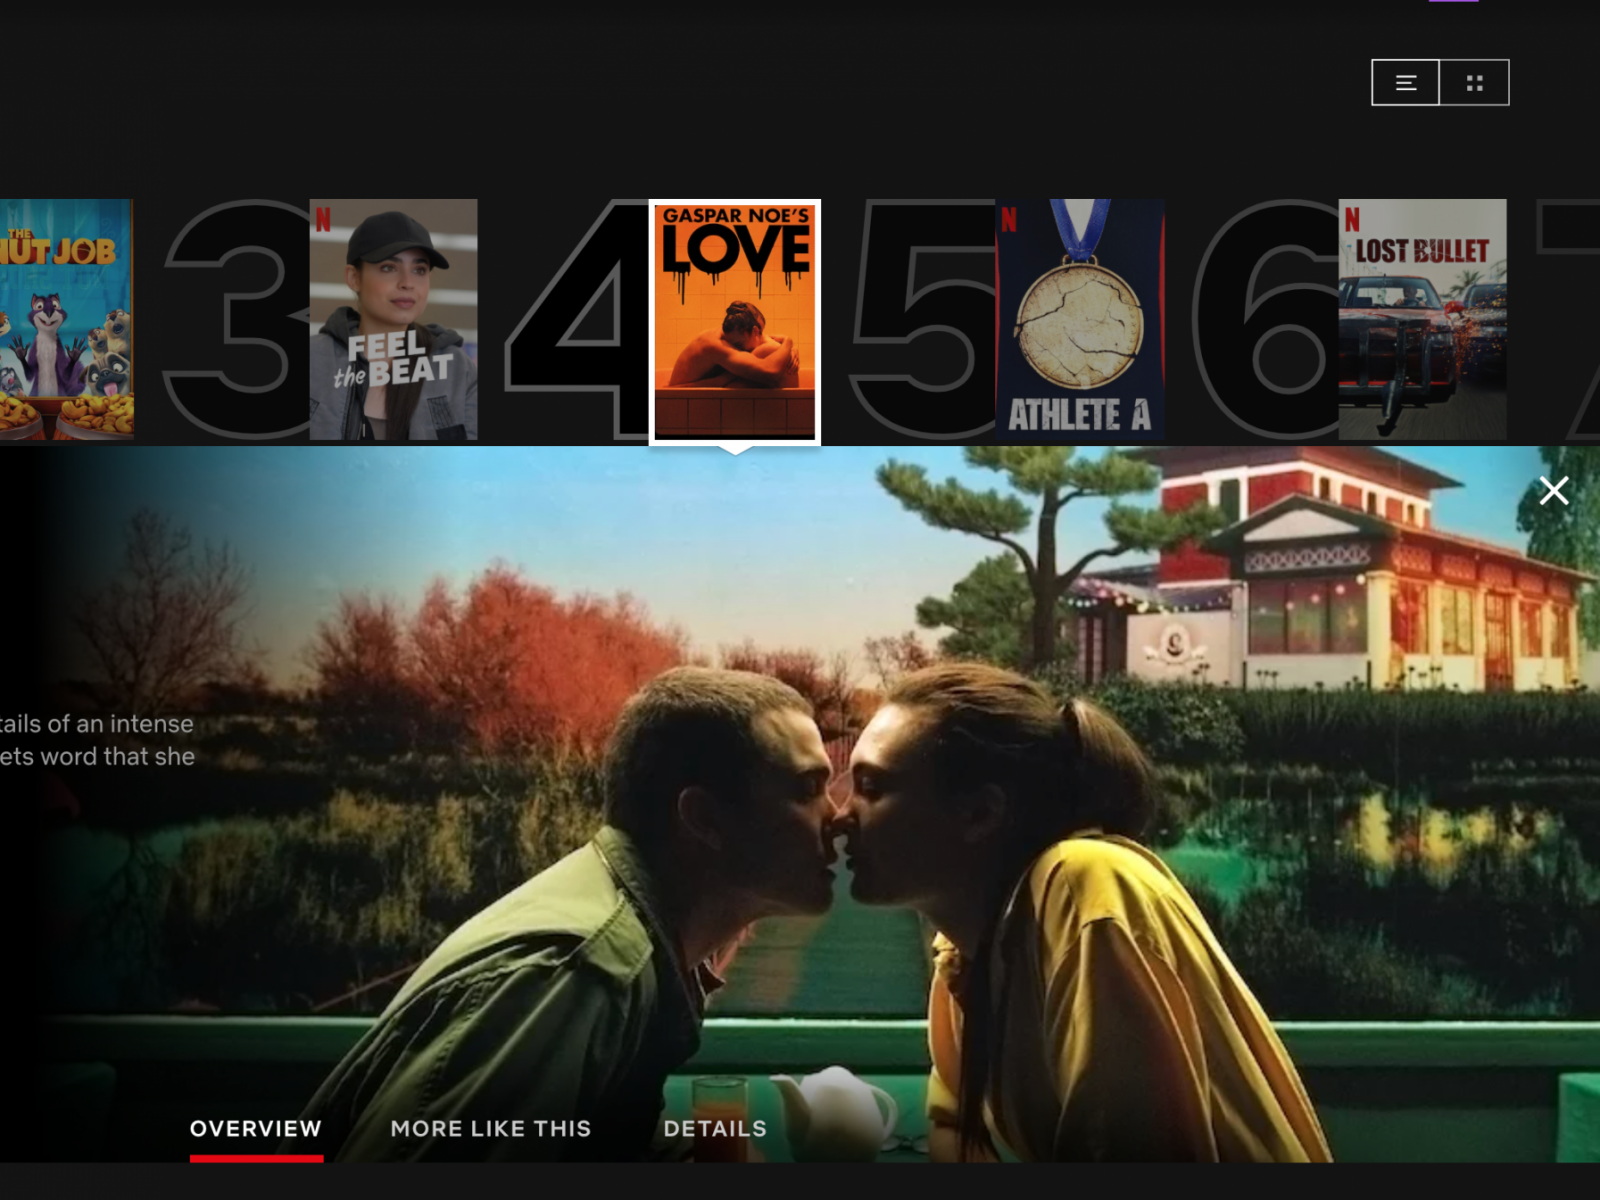 Love Netflix Movie Trends As Tiktok Users React To Unsimulated Sex Scene